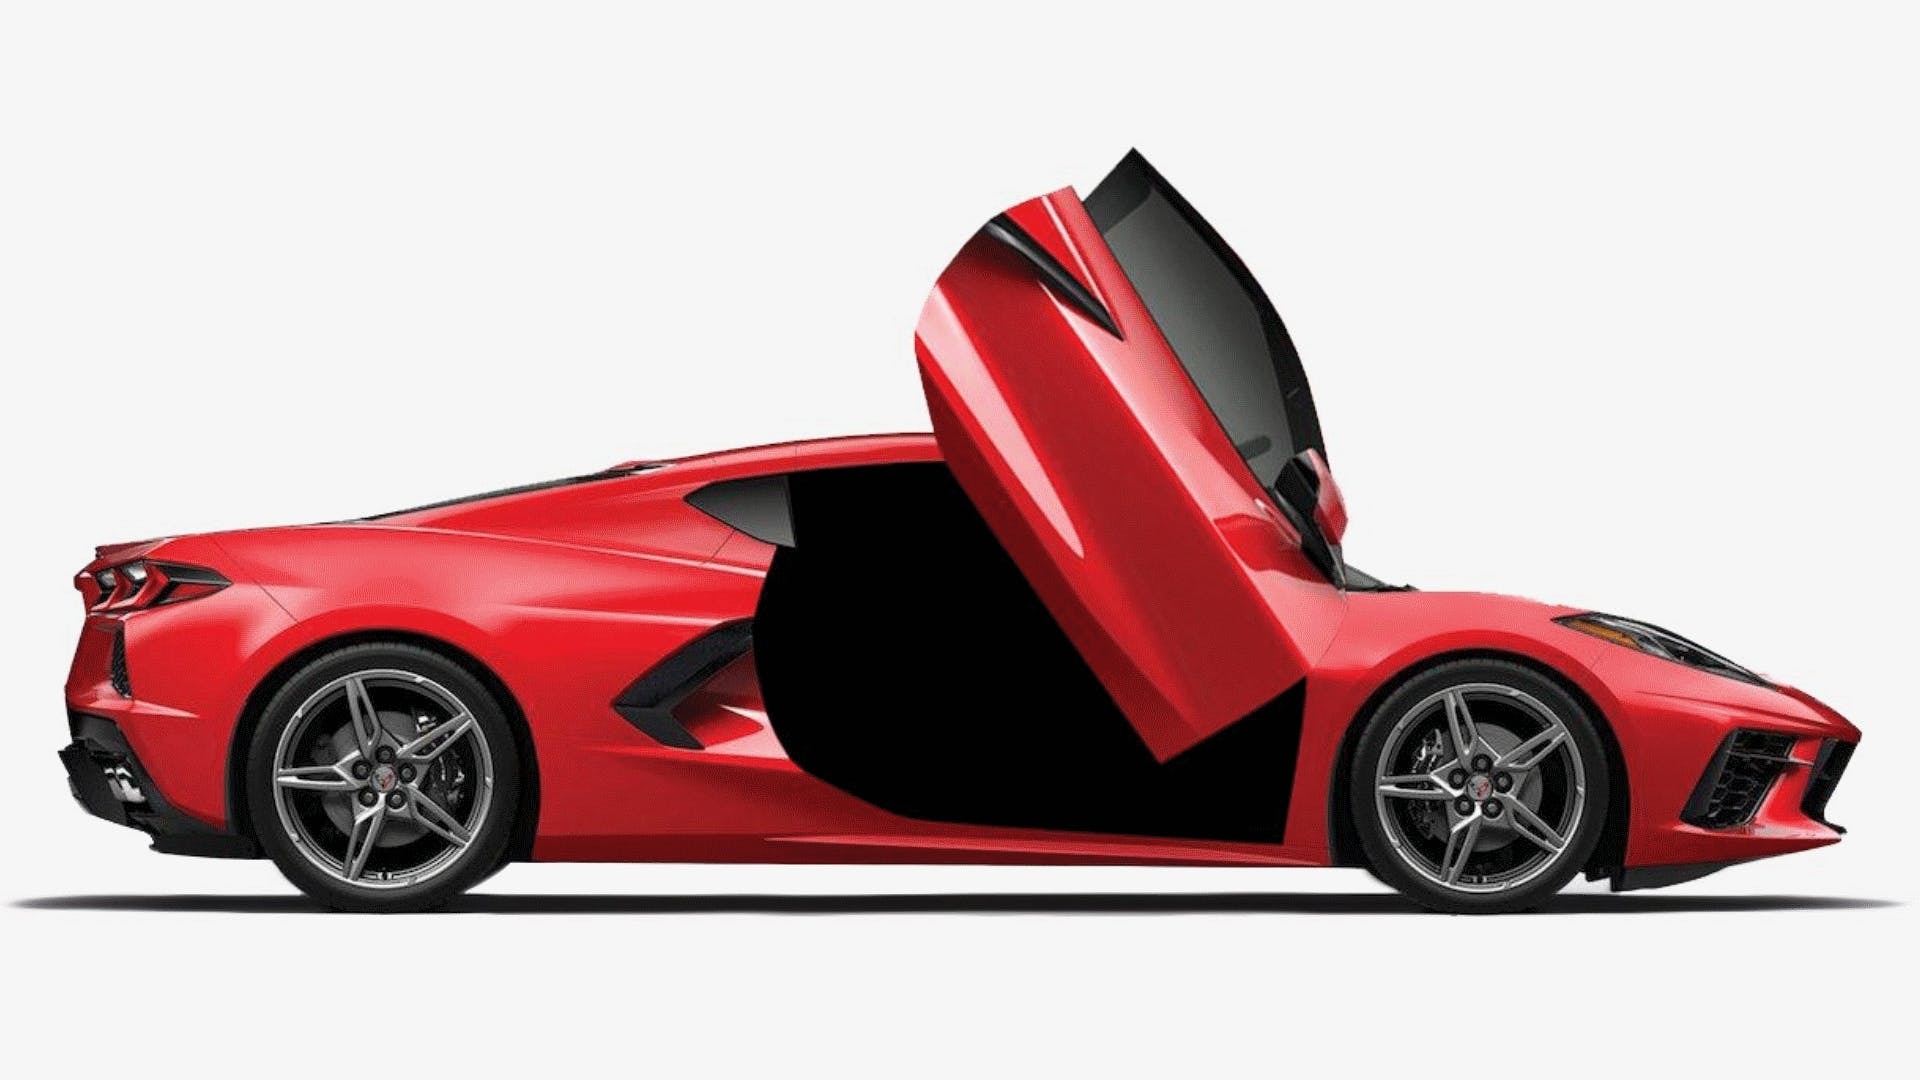 Lambo Doors On A C8? Not Just No….HELL NO – Just Because You Can Does Not Mean That You Should